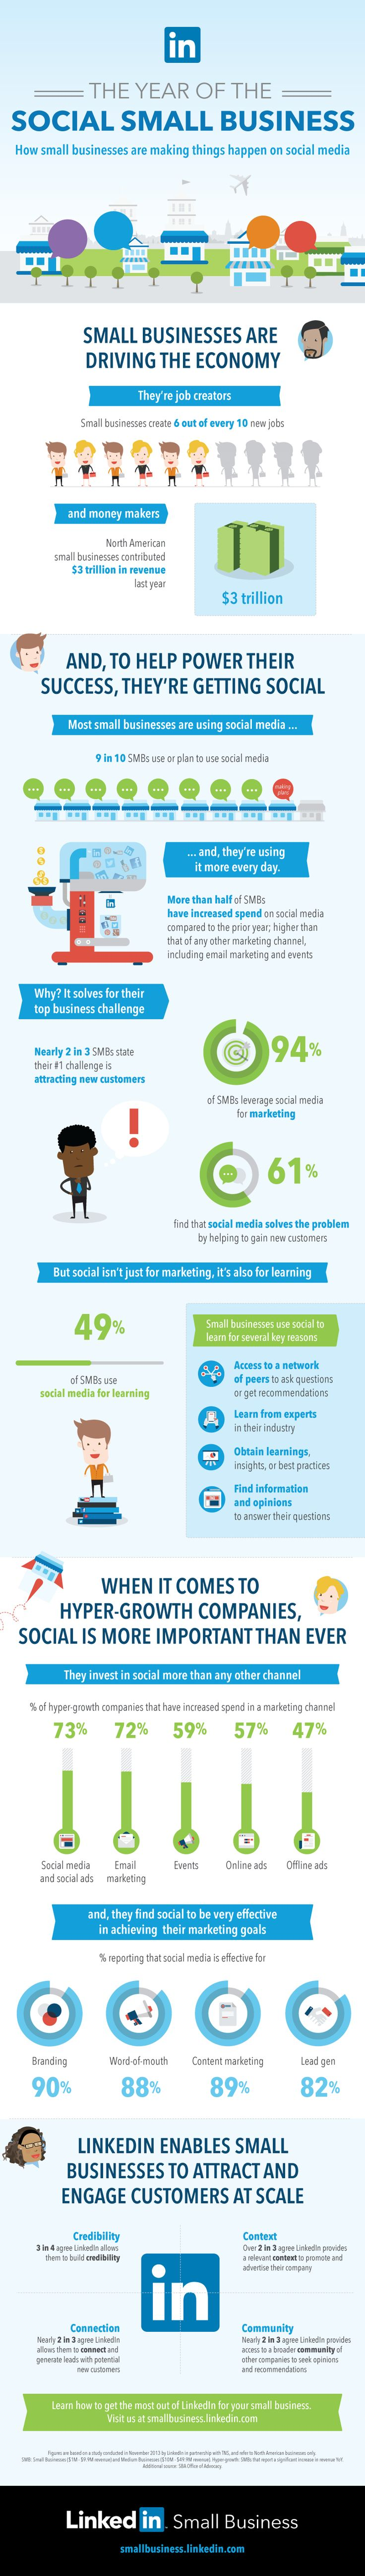 Small Business Beating Big Brands On Social Media - Infographic - The Main Street Analyst